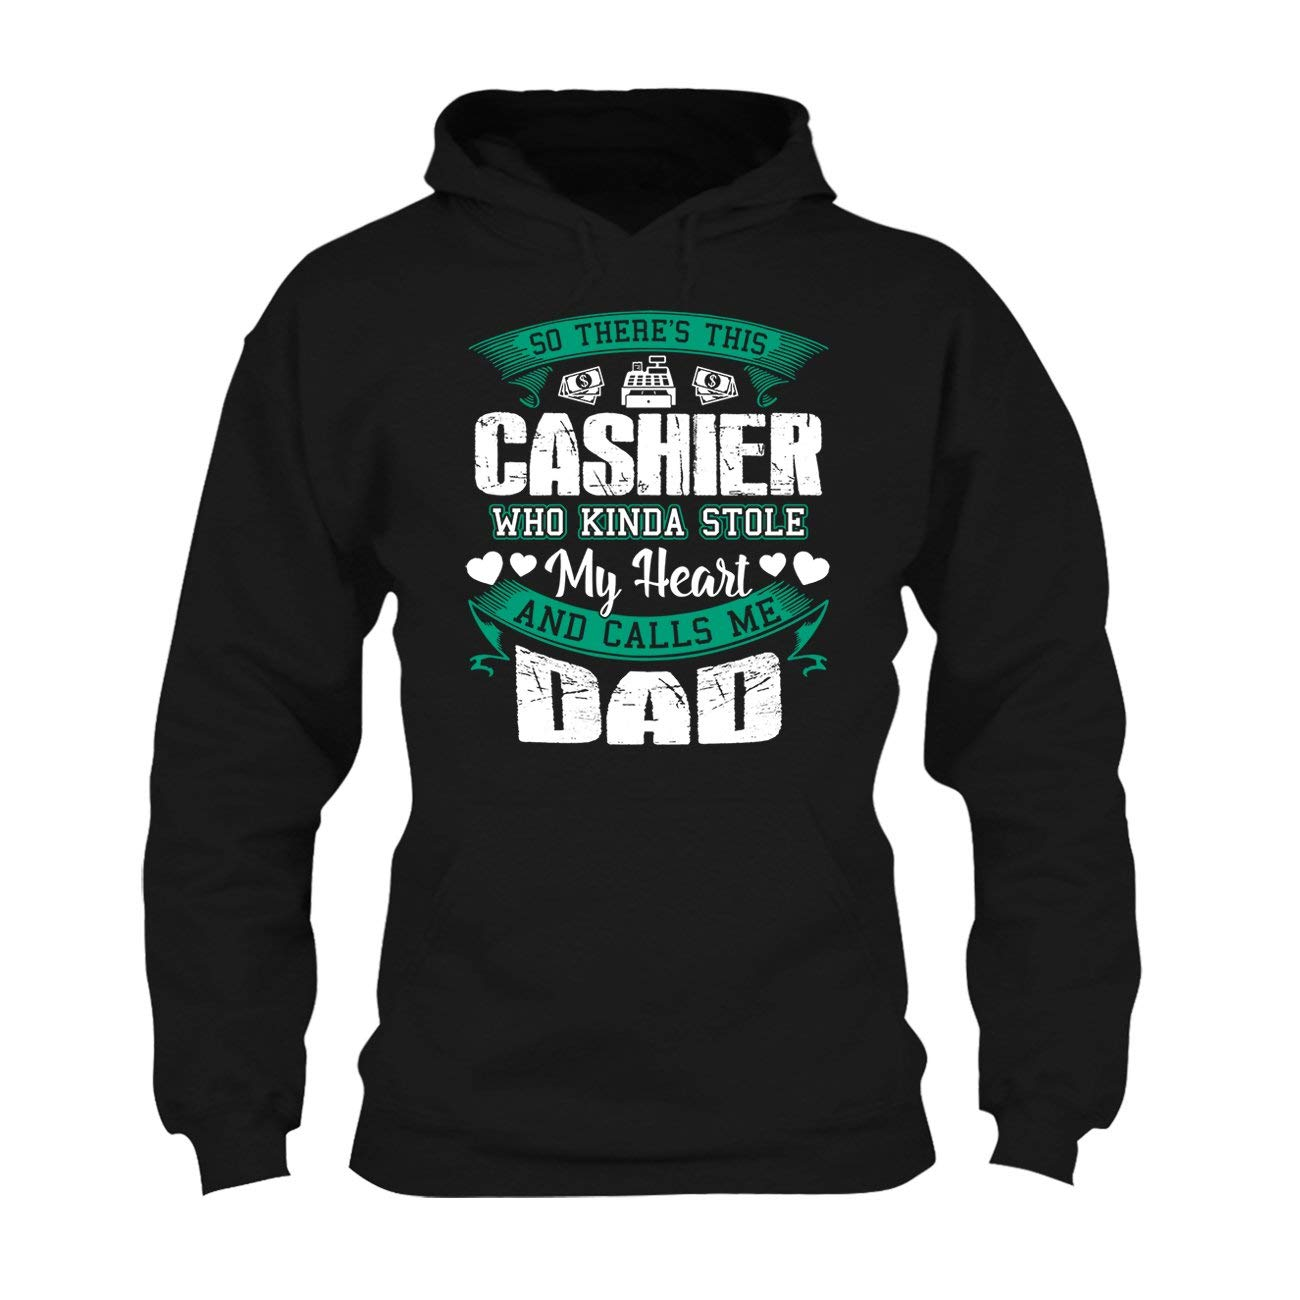 Hoodie Cool Sweatshirt Cashier Dad Tee Shirt